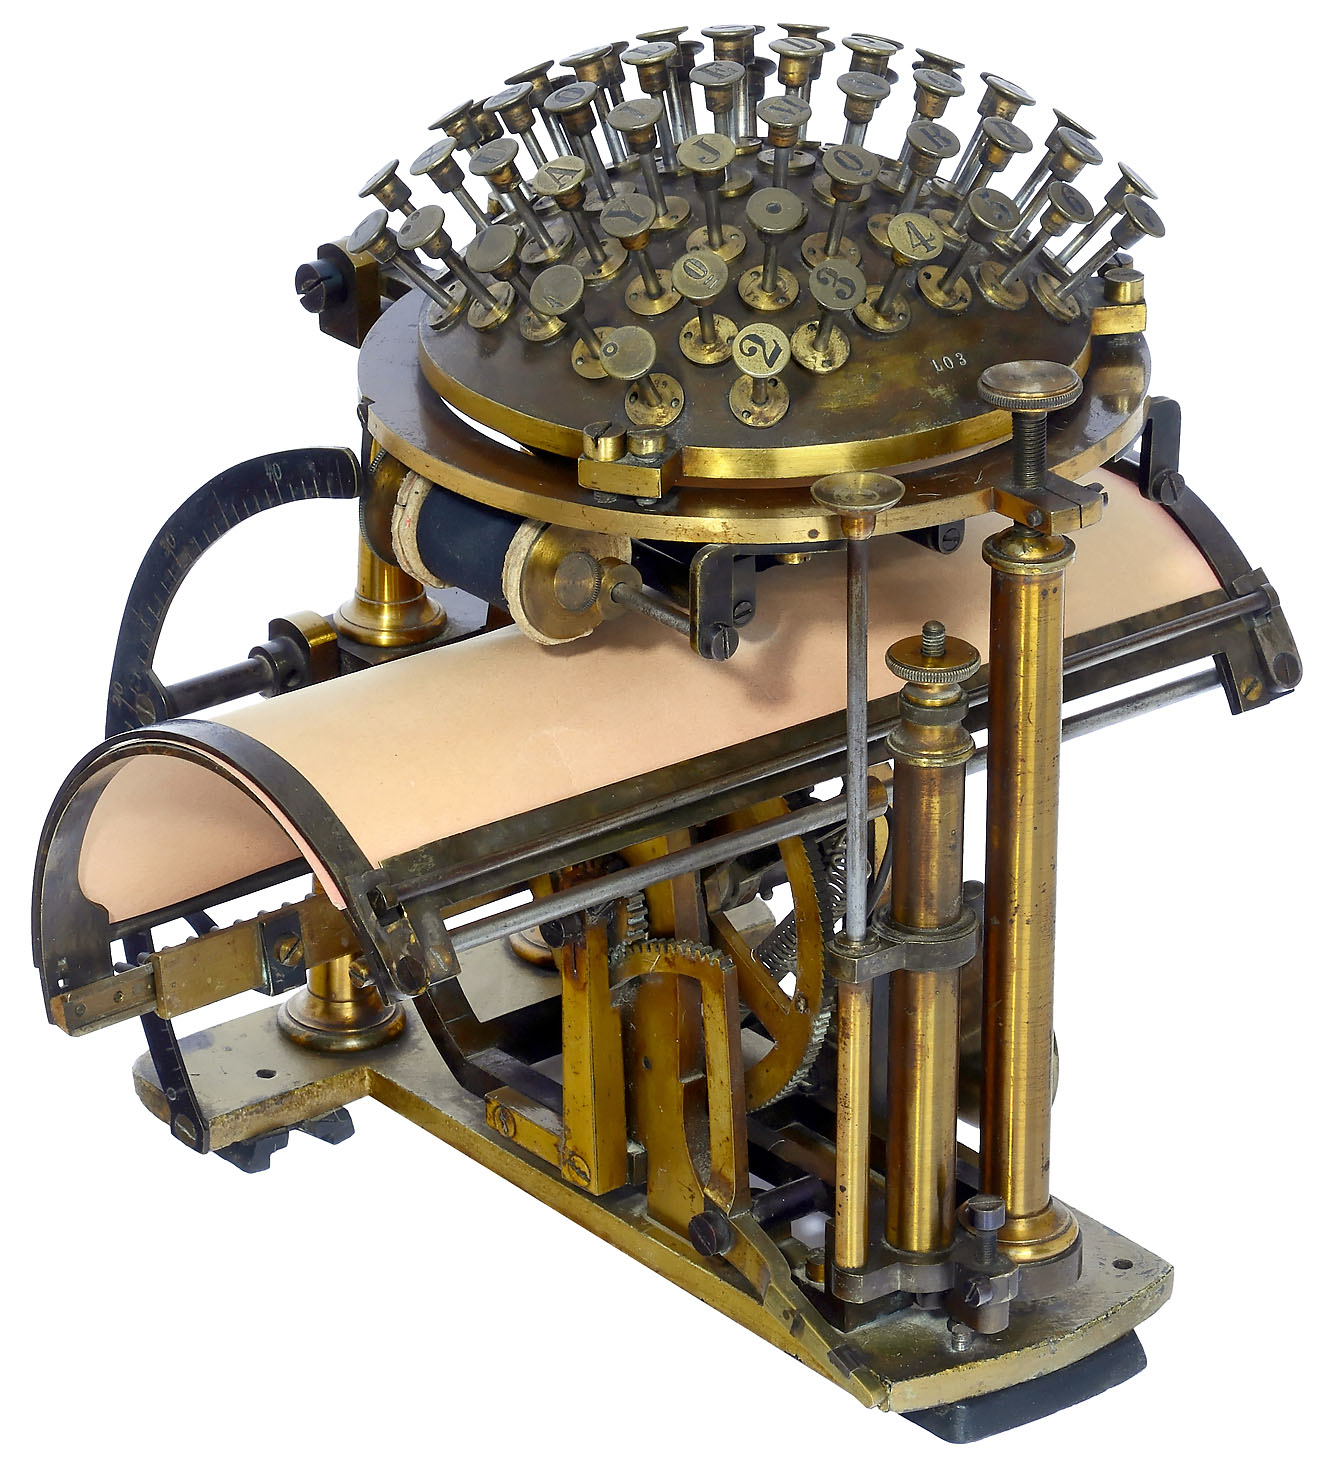 "A Malling-Hansen ""Writing Ball"", an early typewriter, shown in three-quarter view. Its semi-circular keyboard appears above its curved typing surface."